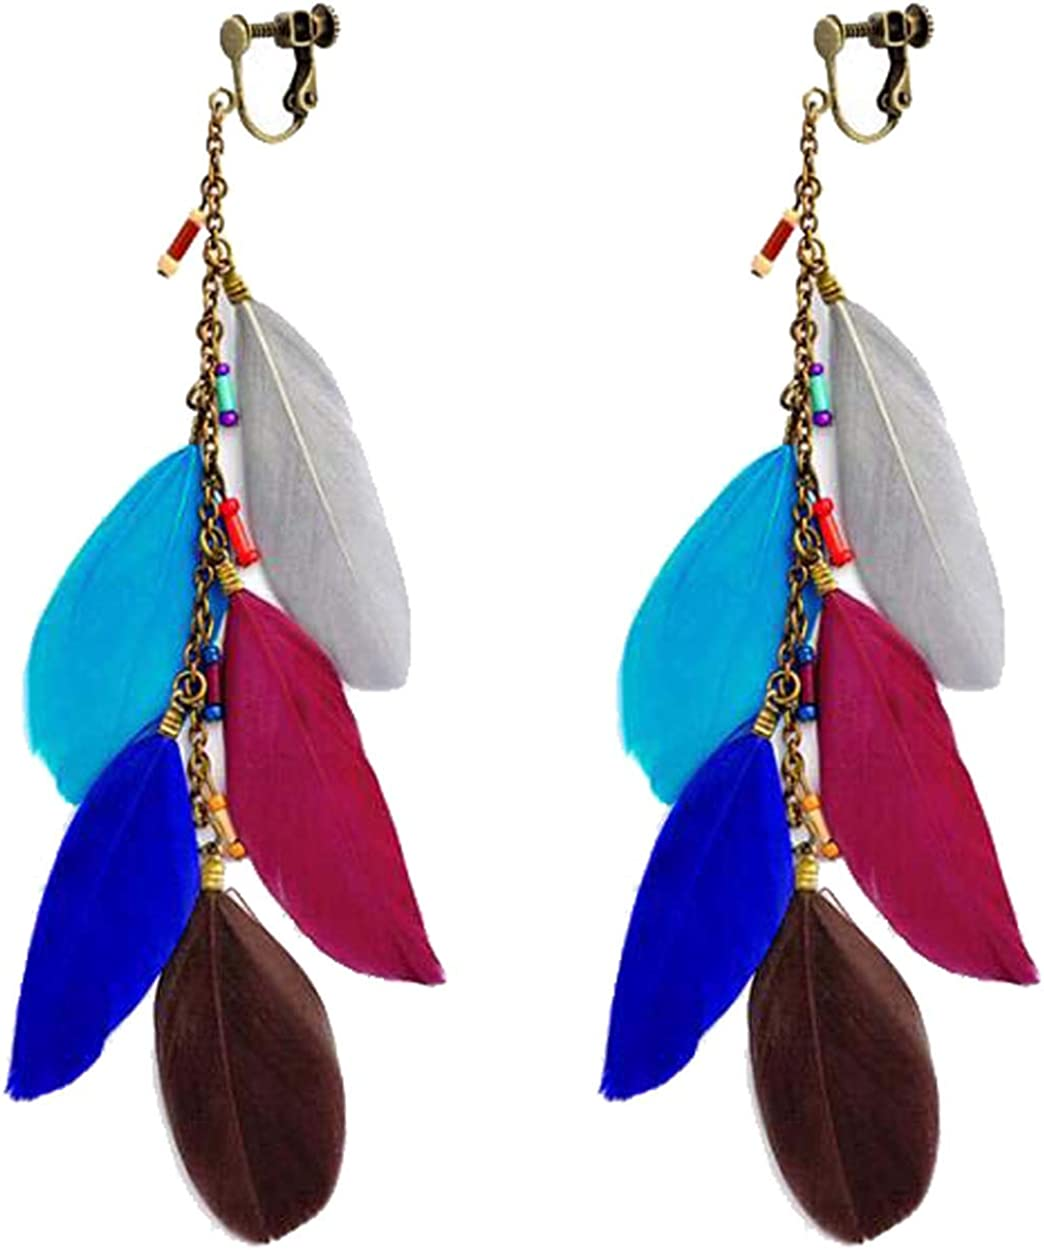 Fashion Colorful Feather Clip on Earrings Retro Dangle Hoops Drop Long Tassel Leaf Beaded Non Pierced Ears for Girls Women Party Birthday Gifts